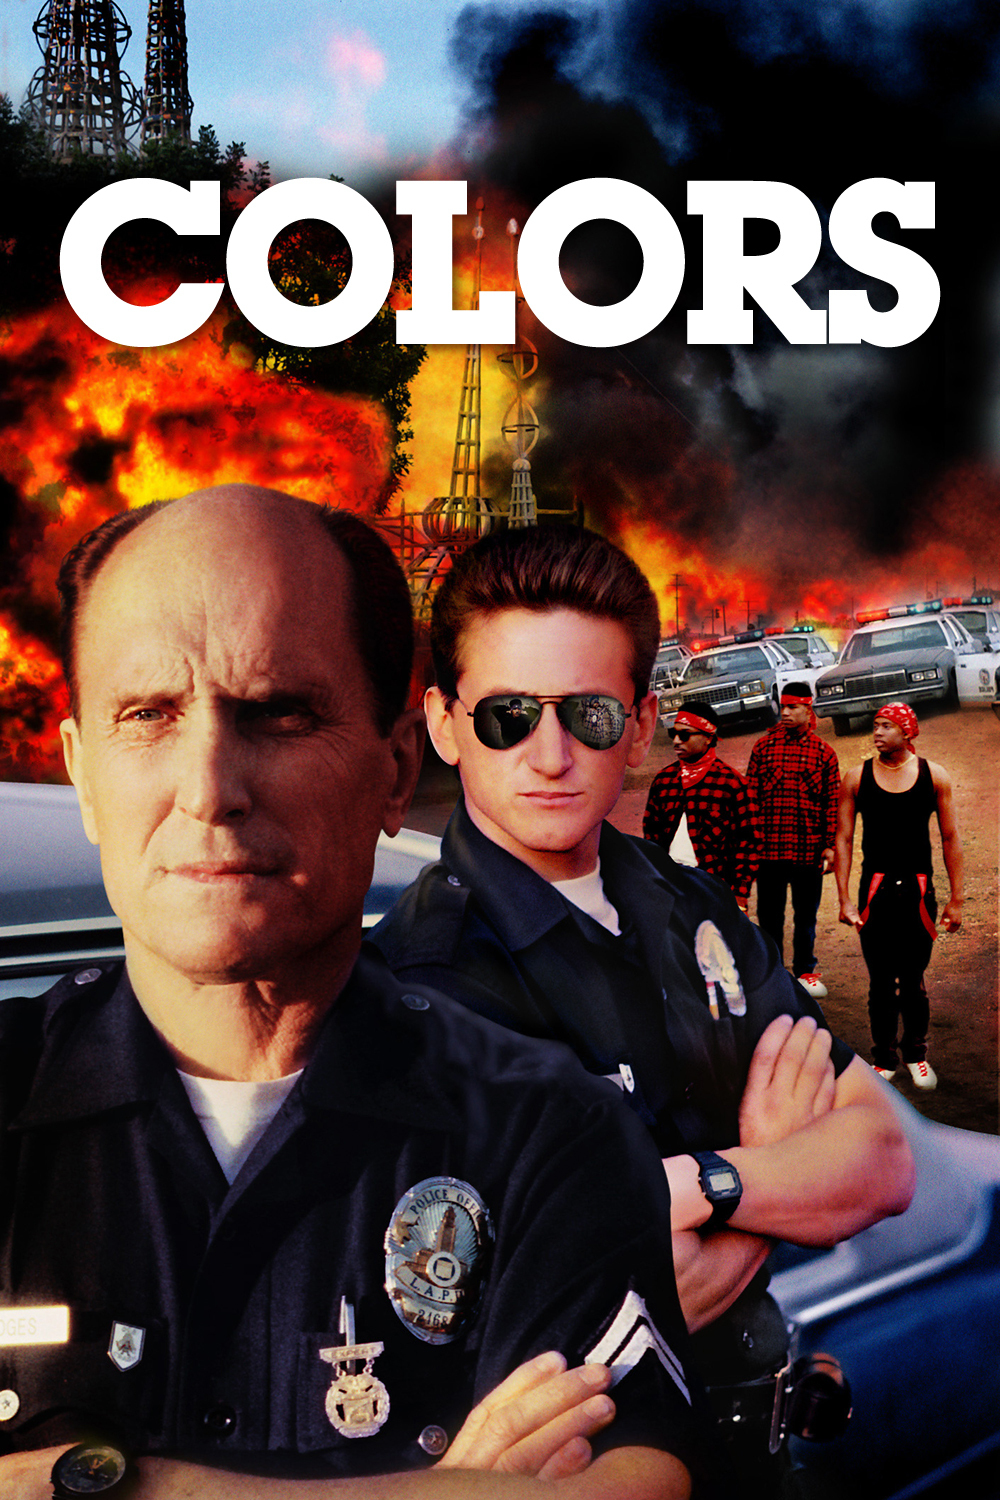 Colors | Watch movies online download free movies. HD, avi, mp4, divx: cool-movies.biz/movie/colors